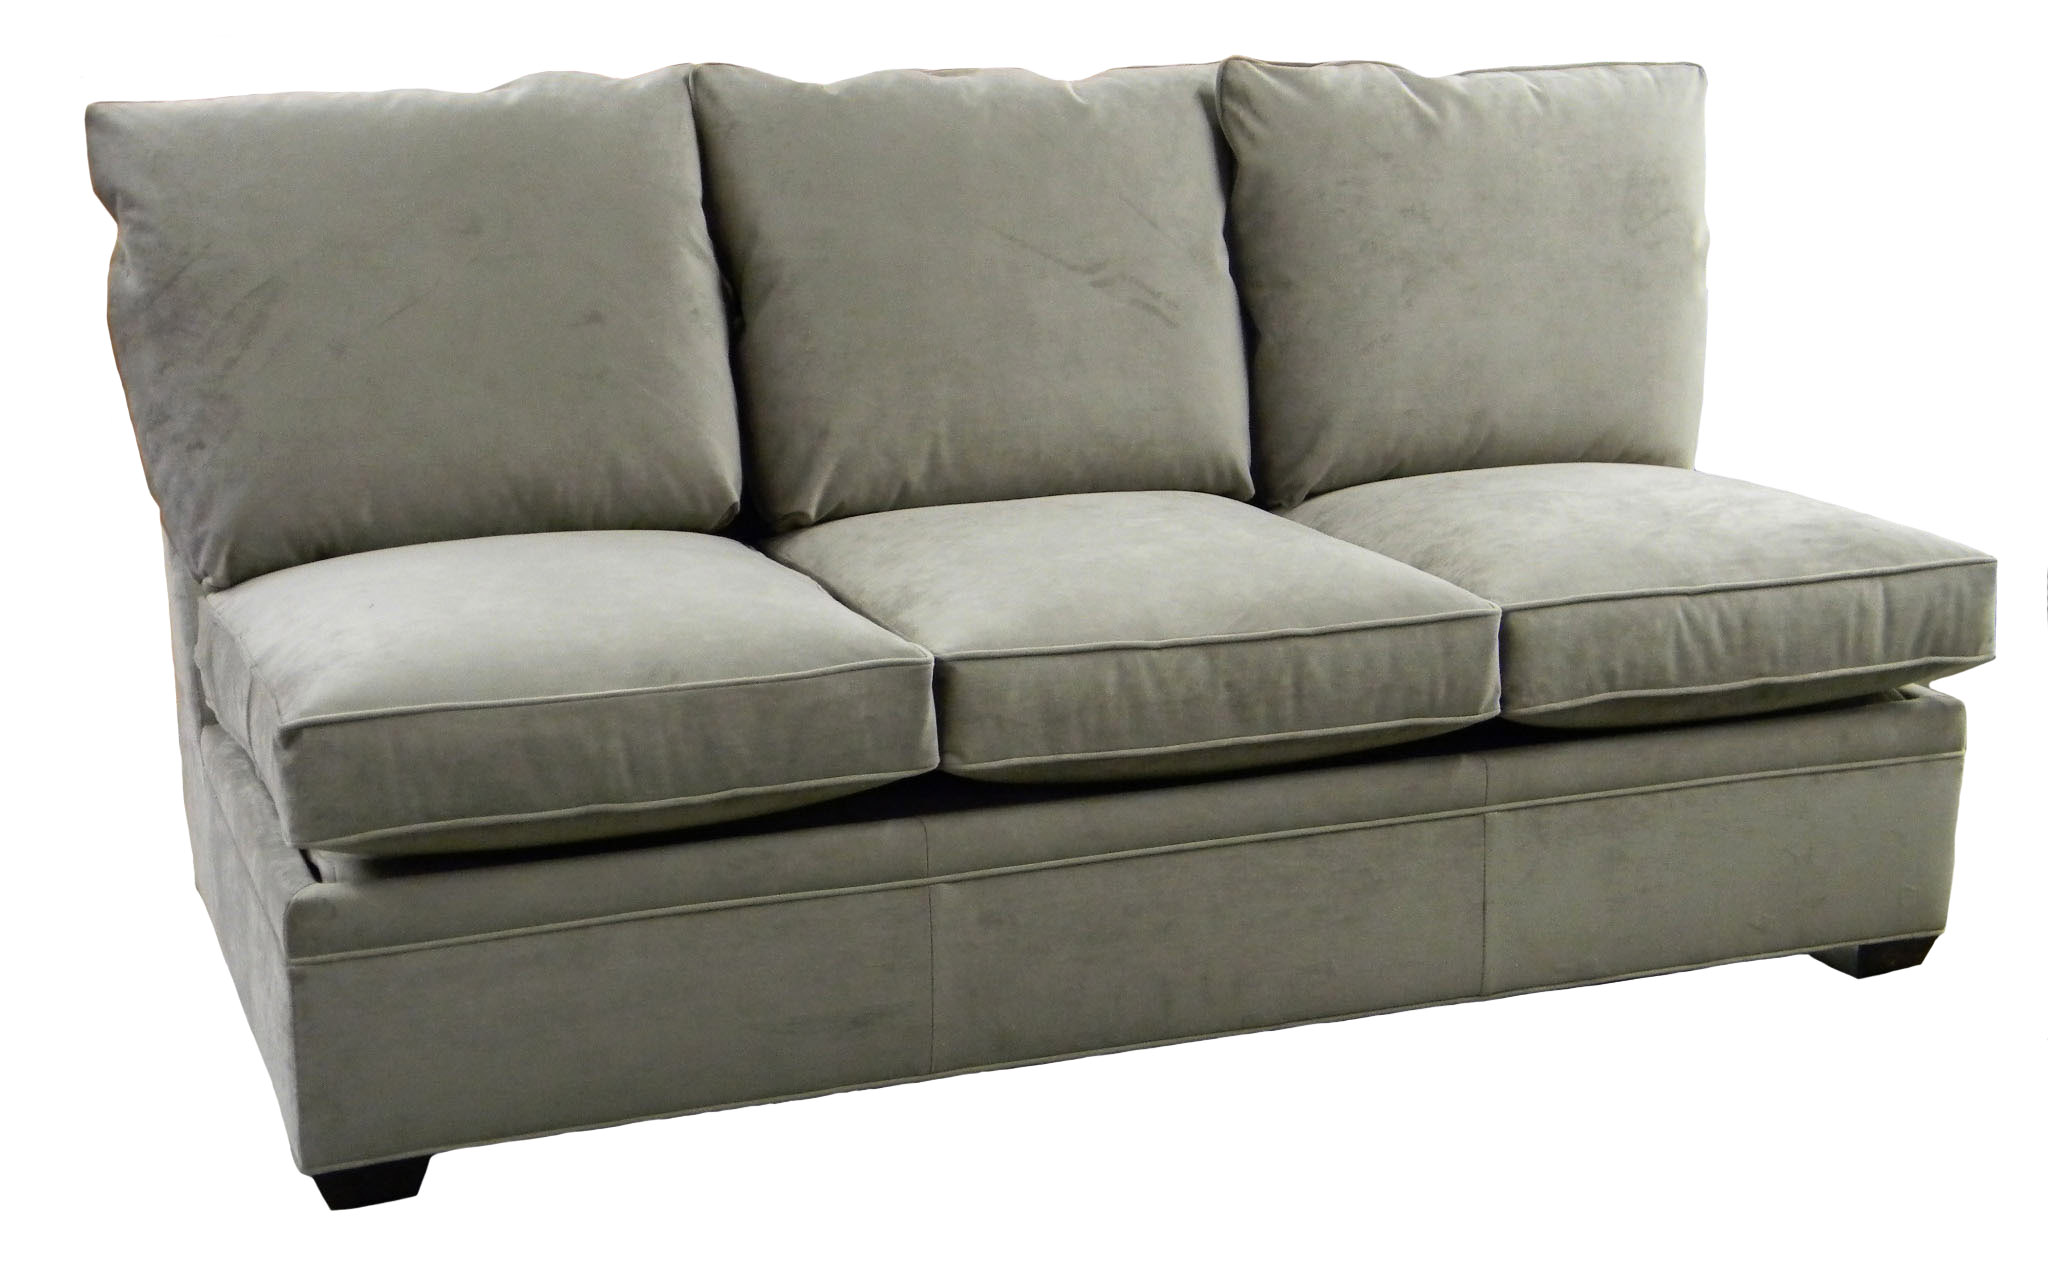 Armless Sleeper Sofa Latest Couch